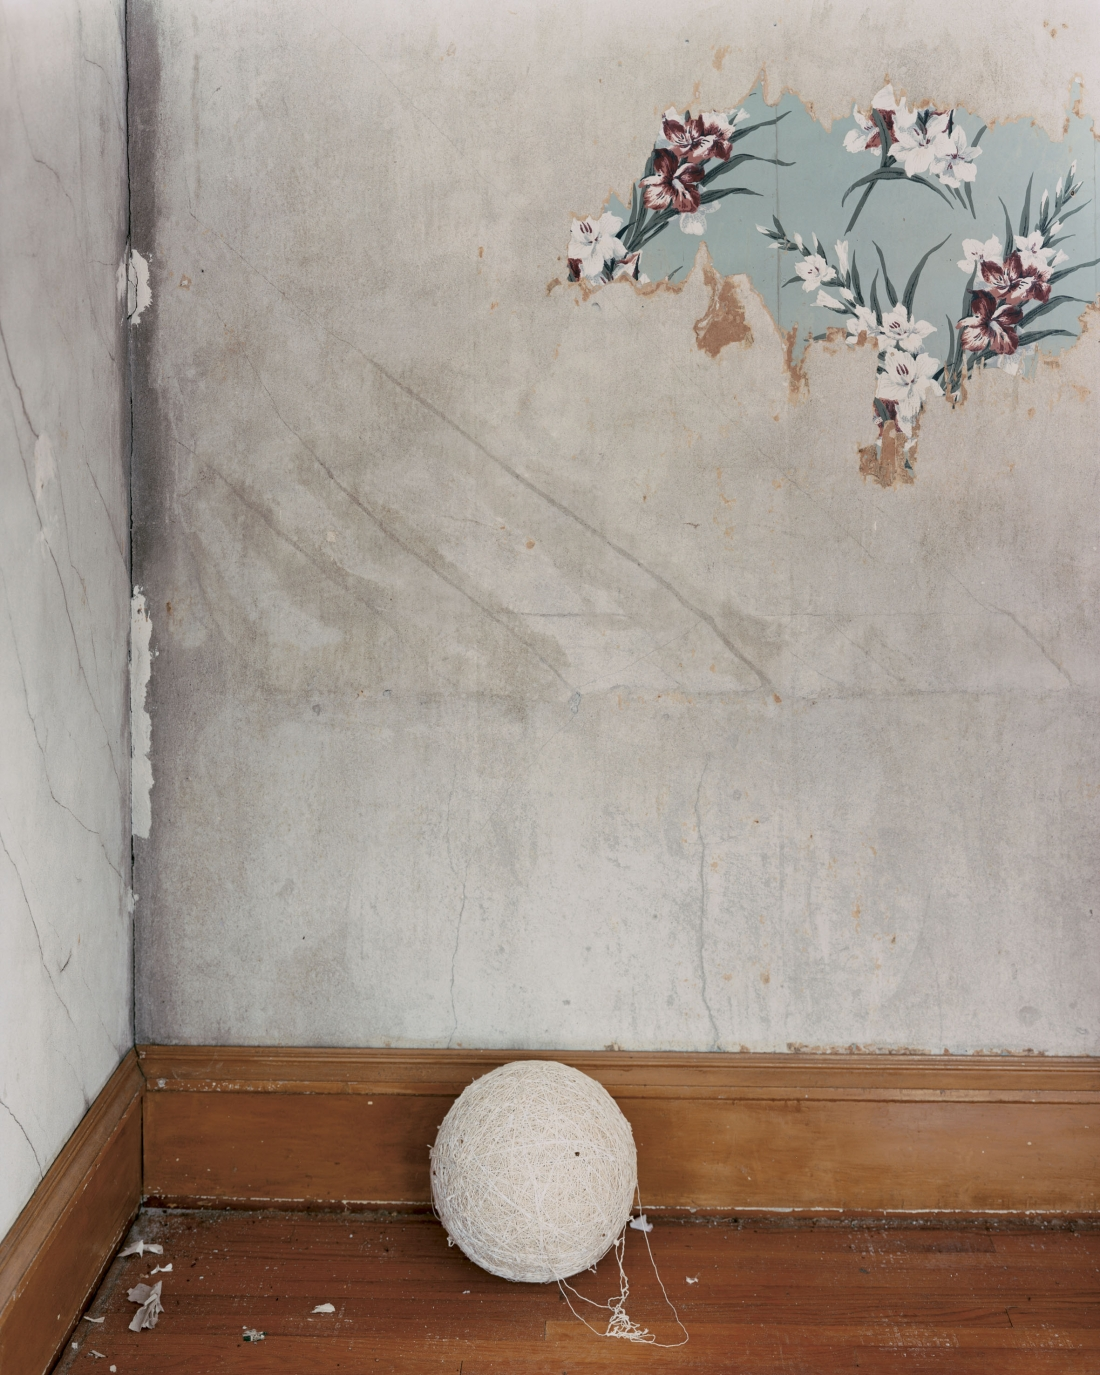 Green Island, Iowa (Ball of String), 2002 © Alec Soth / Magnum Photos courtesy Sean Kelly Gallery, New York and Beetles + Huxley Gallery, London